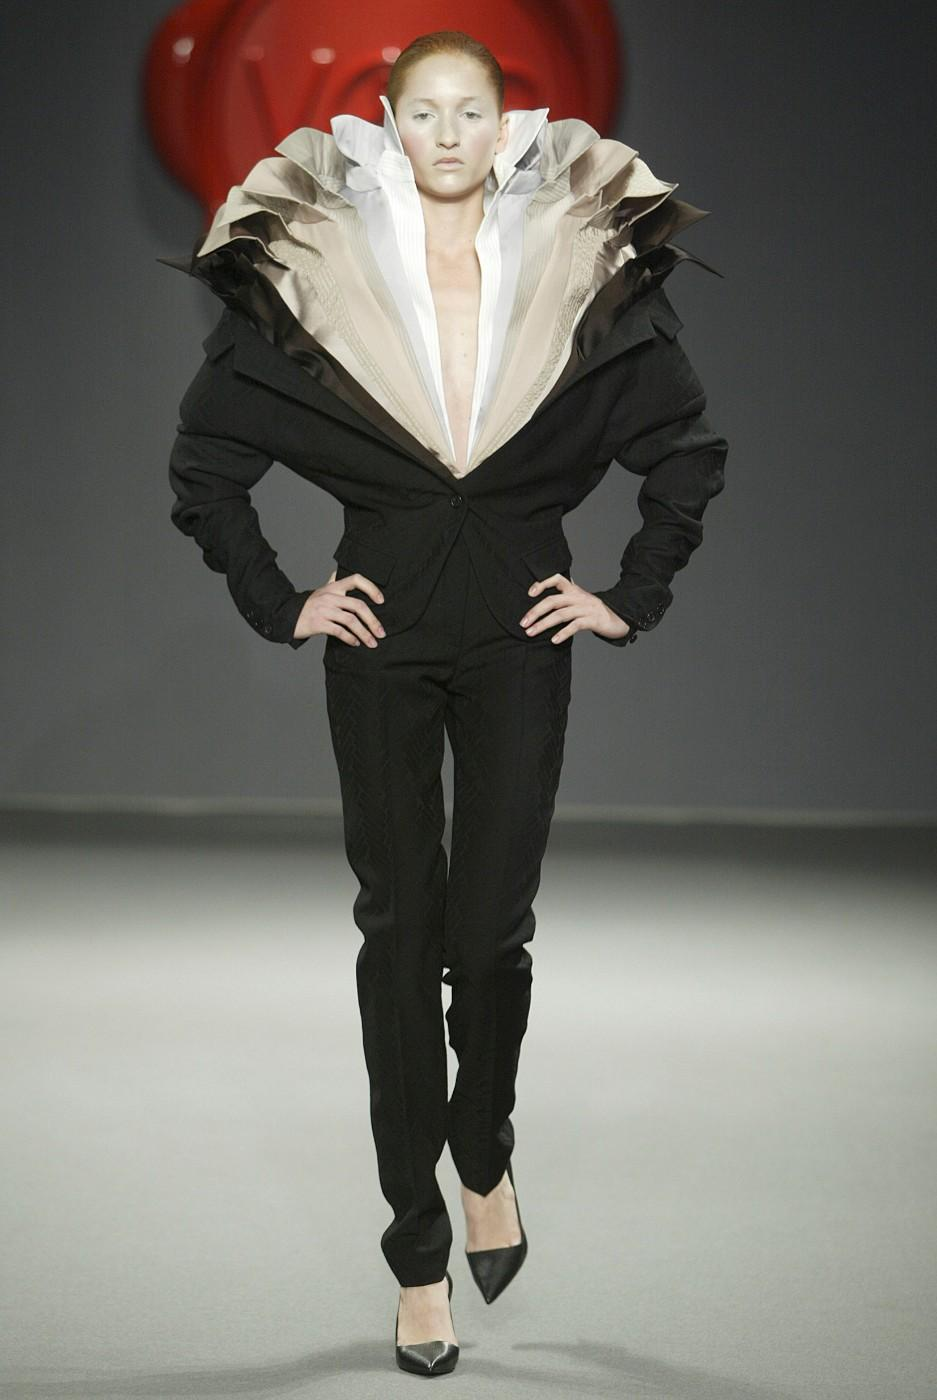 Viktor & Rolf A/W 2003, One Woman Show, Look 32. Viktor and Rolf (Dutch, founded in 1993).